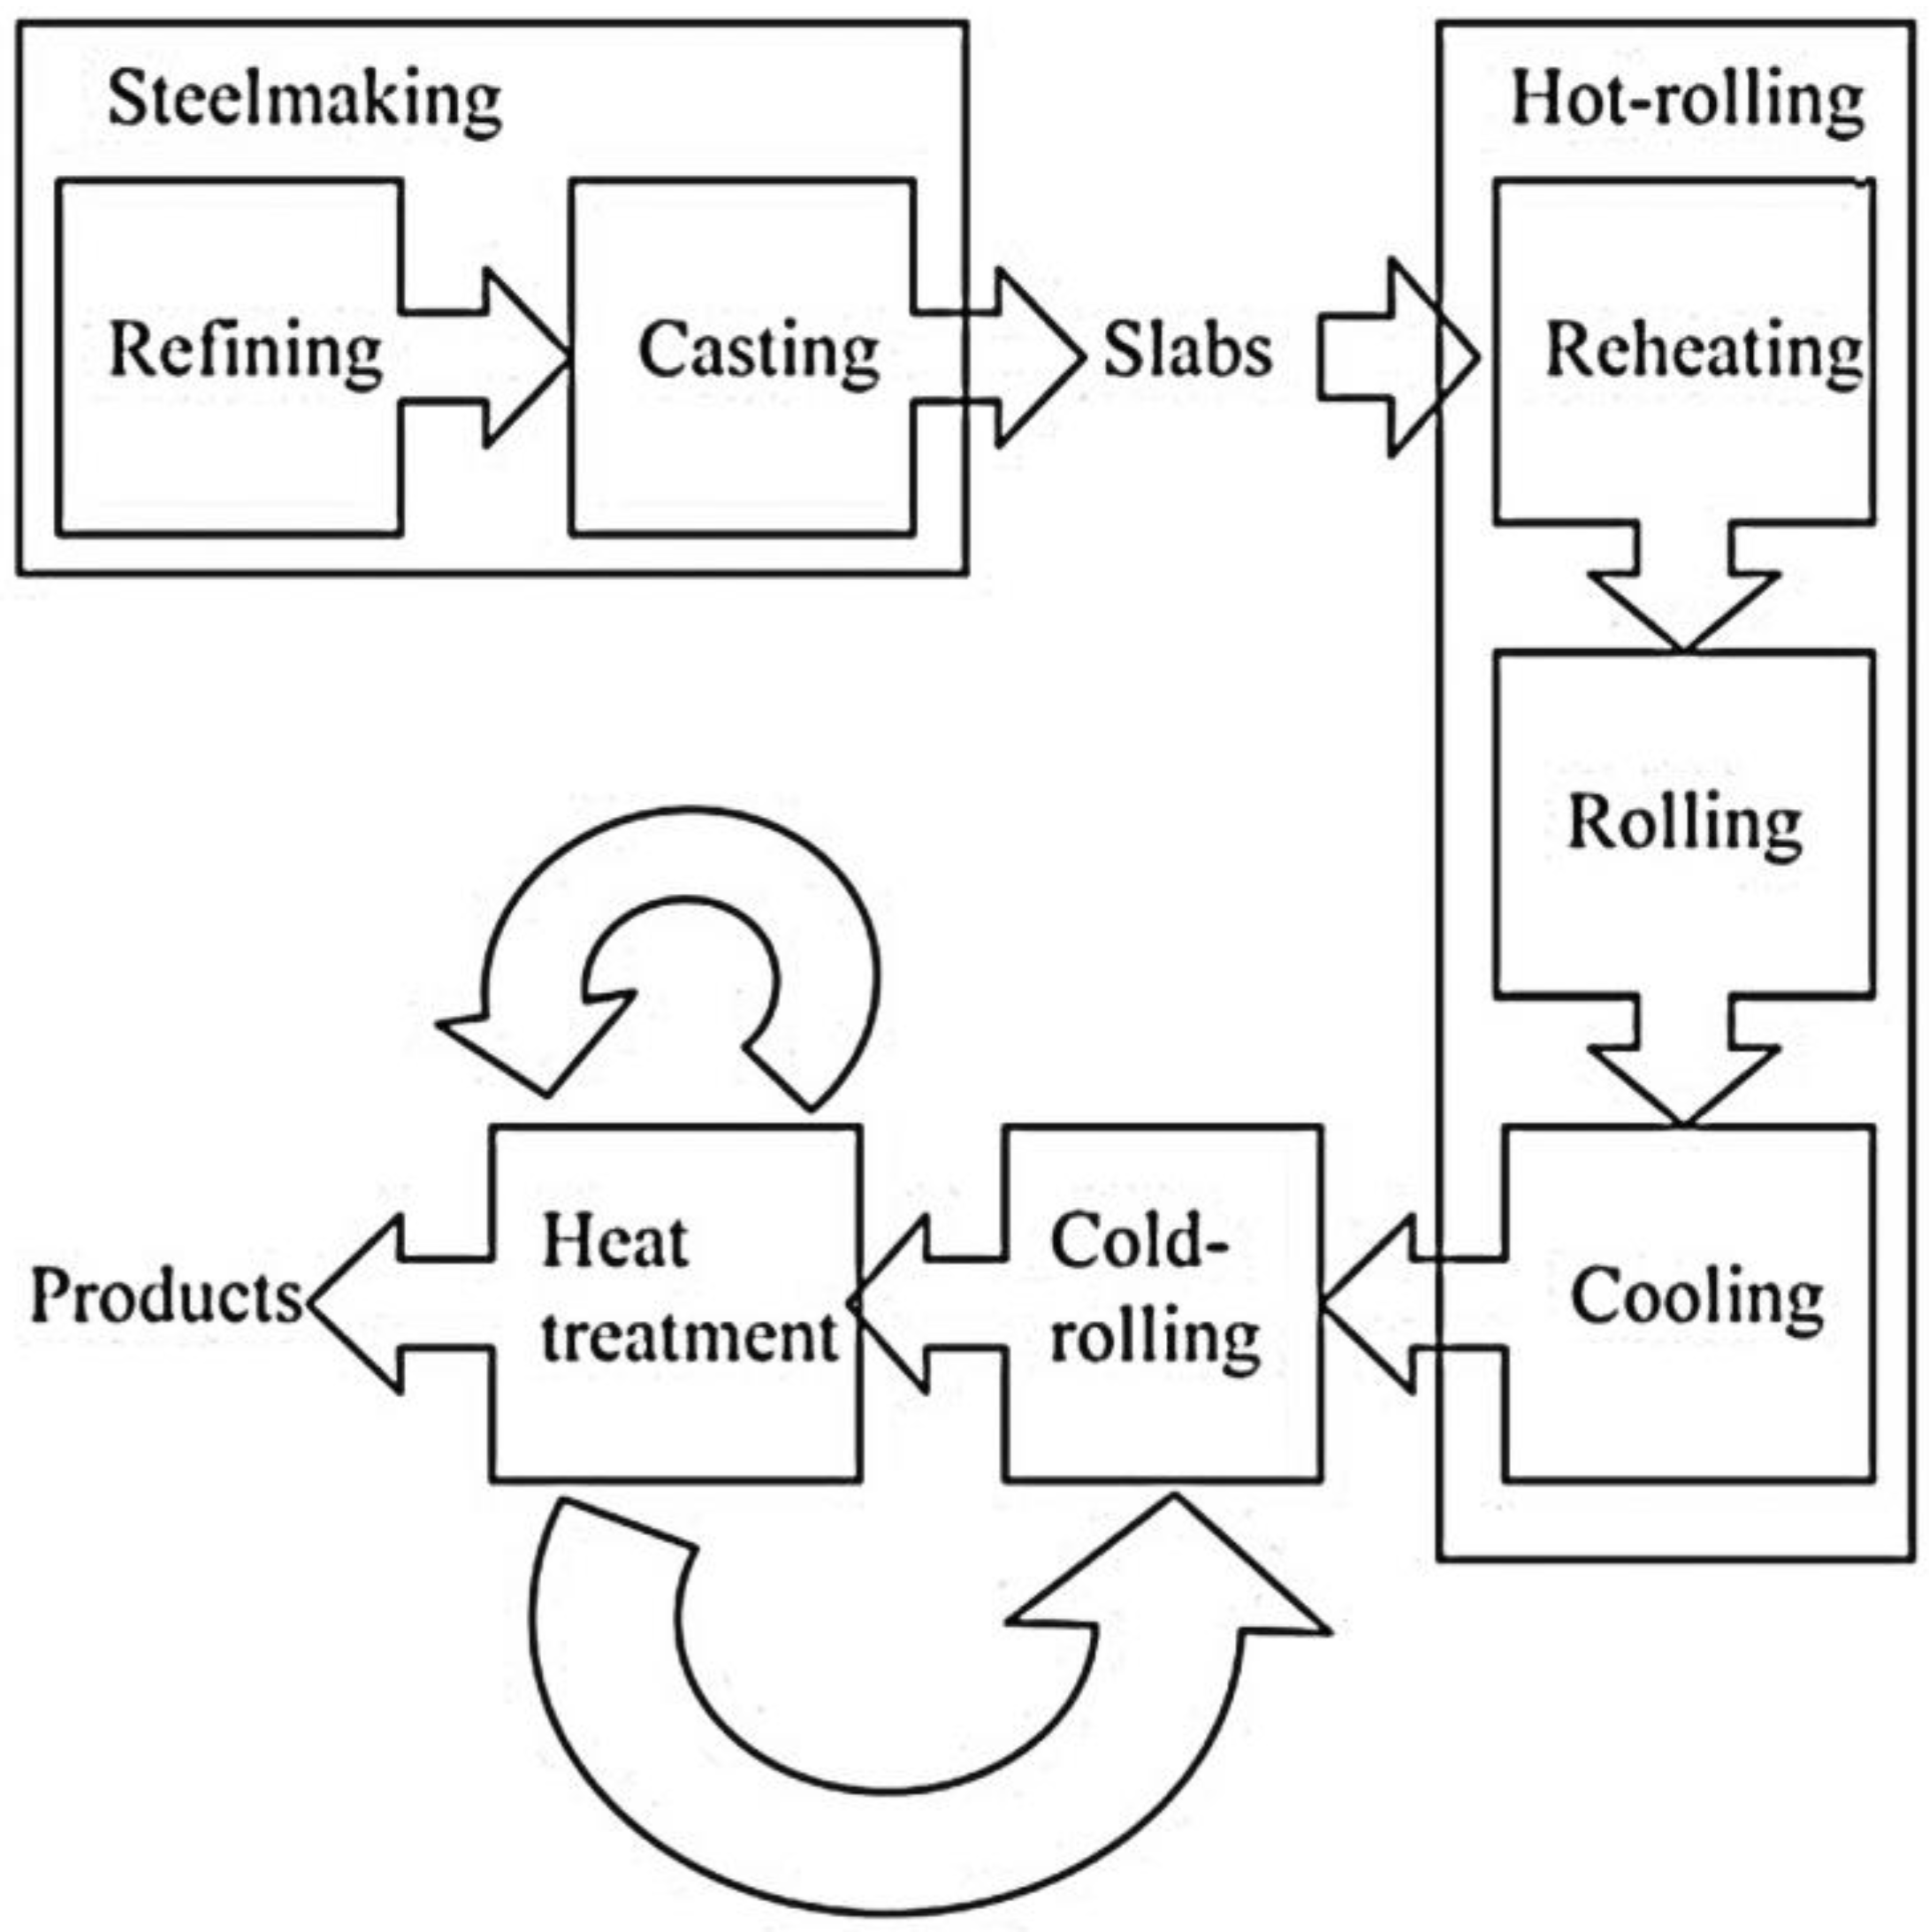 Metals Free Full Text The Integration Of Process And Product Metallurgy In Niobium Bearing Steels Html